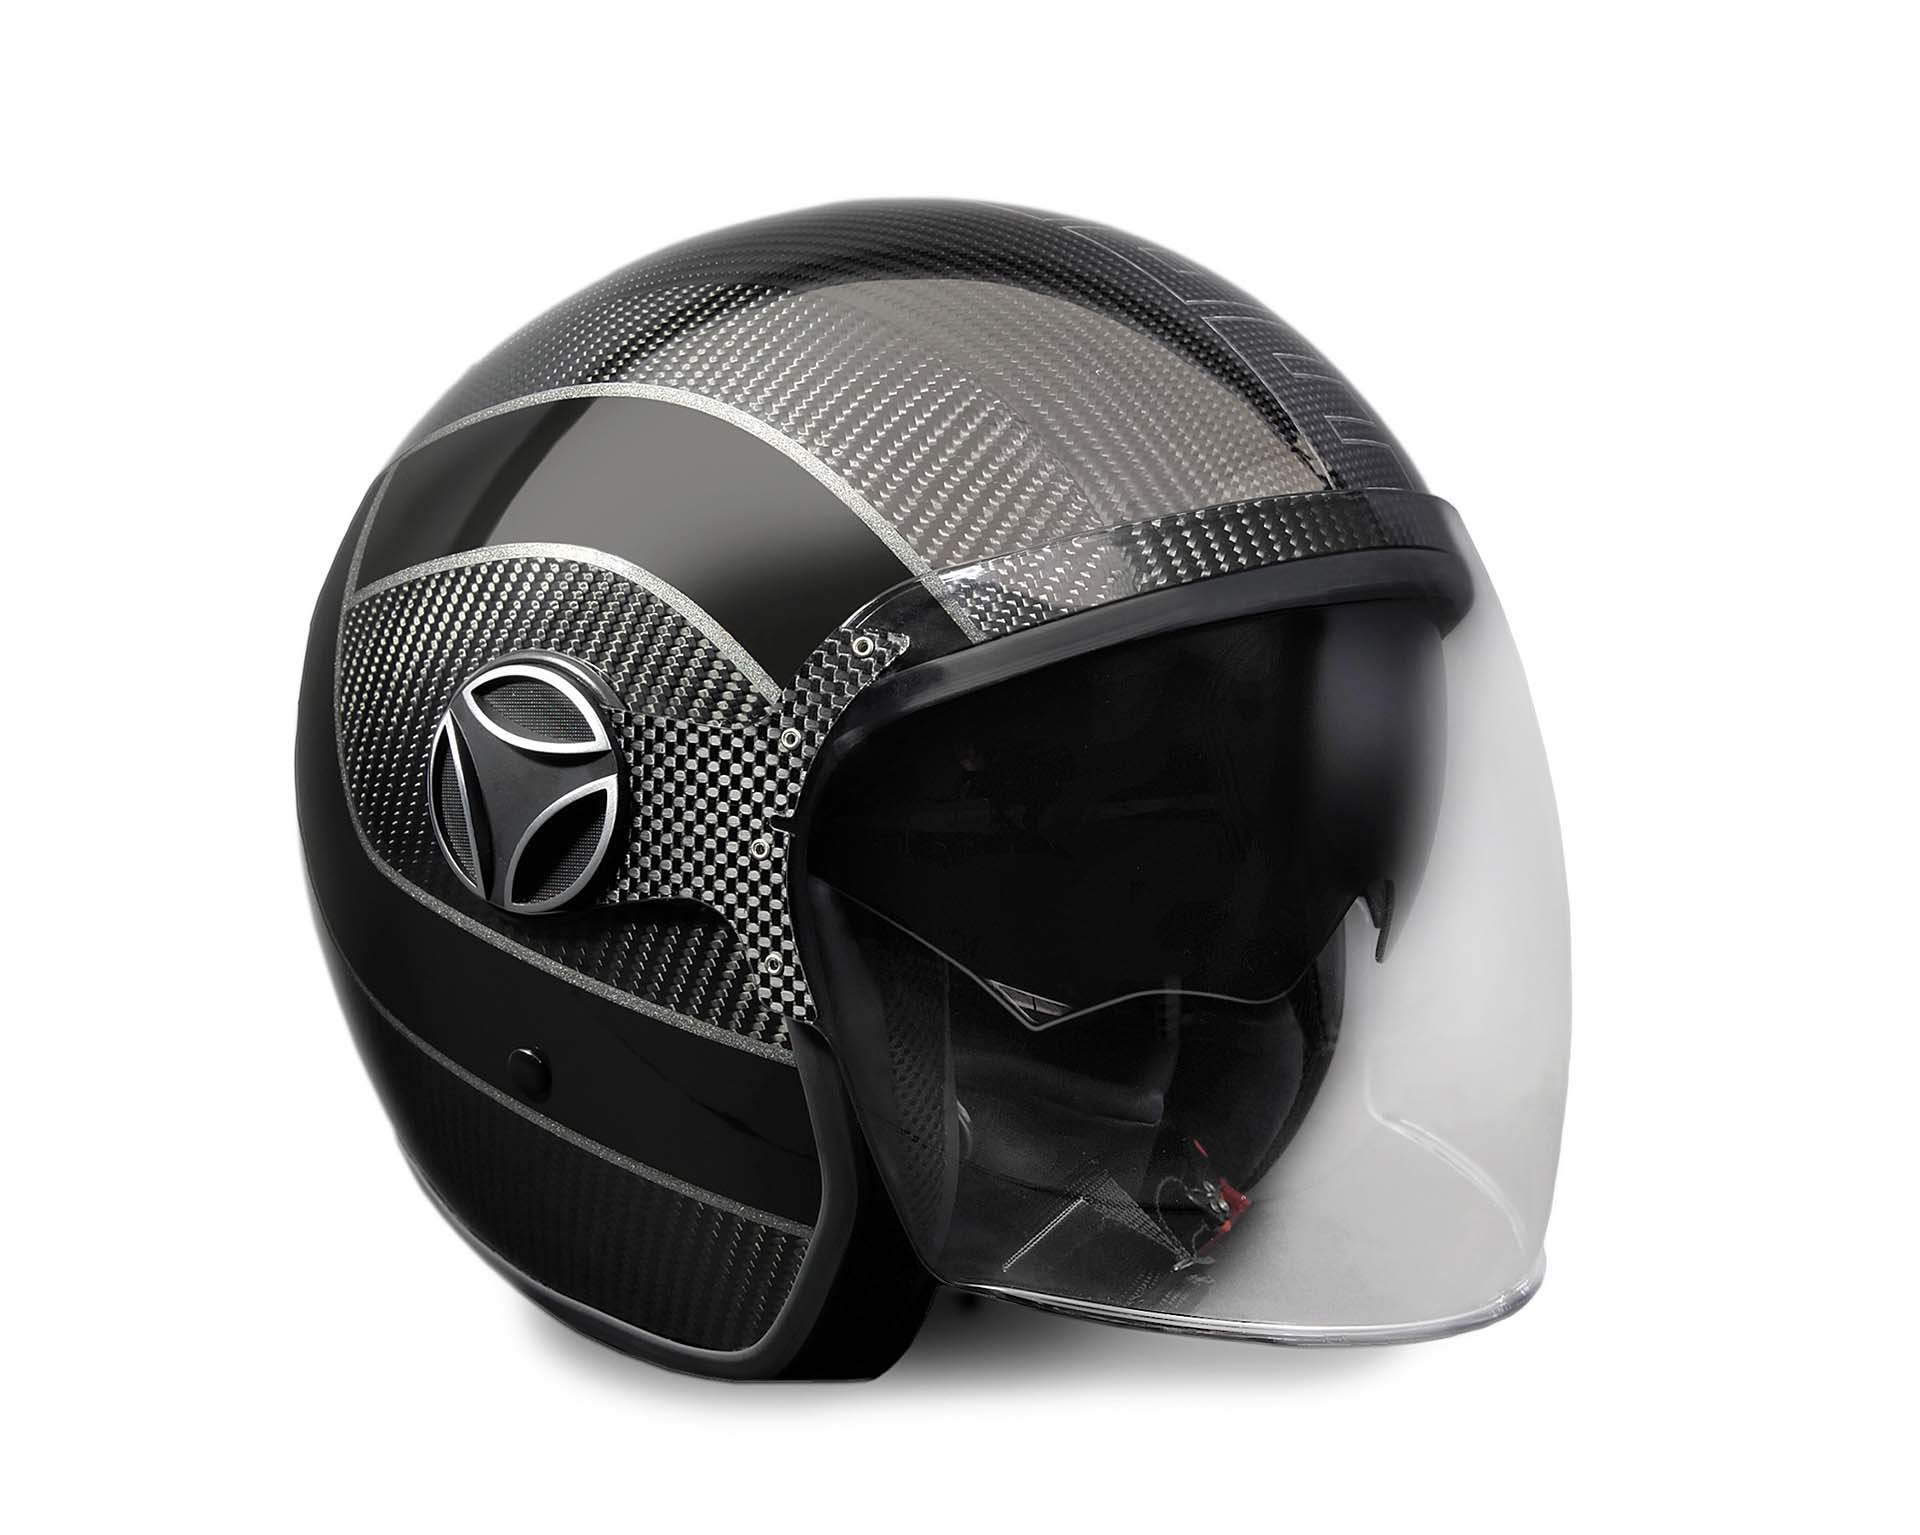 Casco MOMODESIGN Arrow Black e Carbon Edition